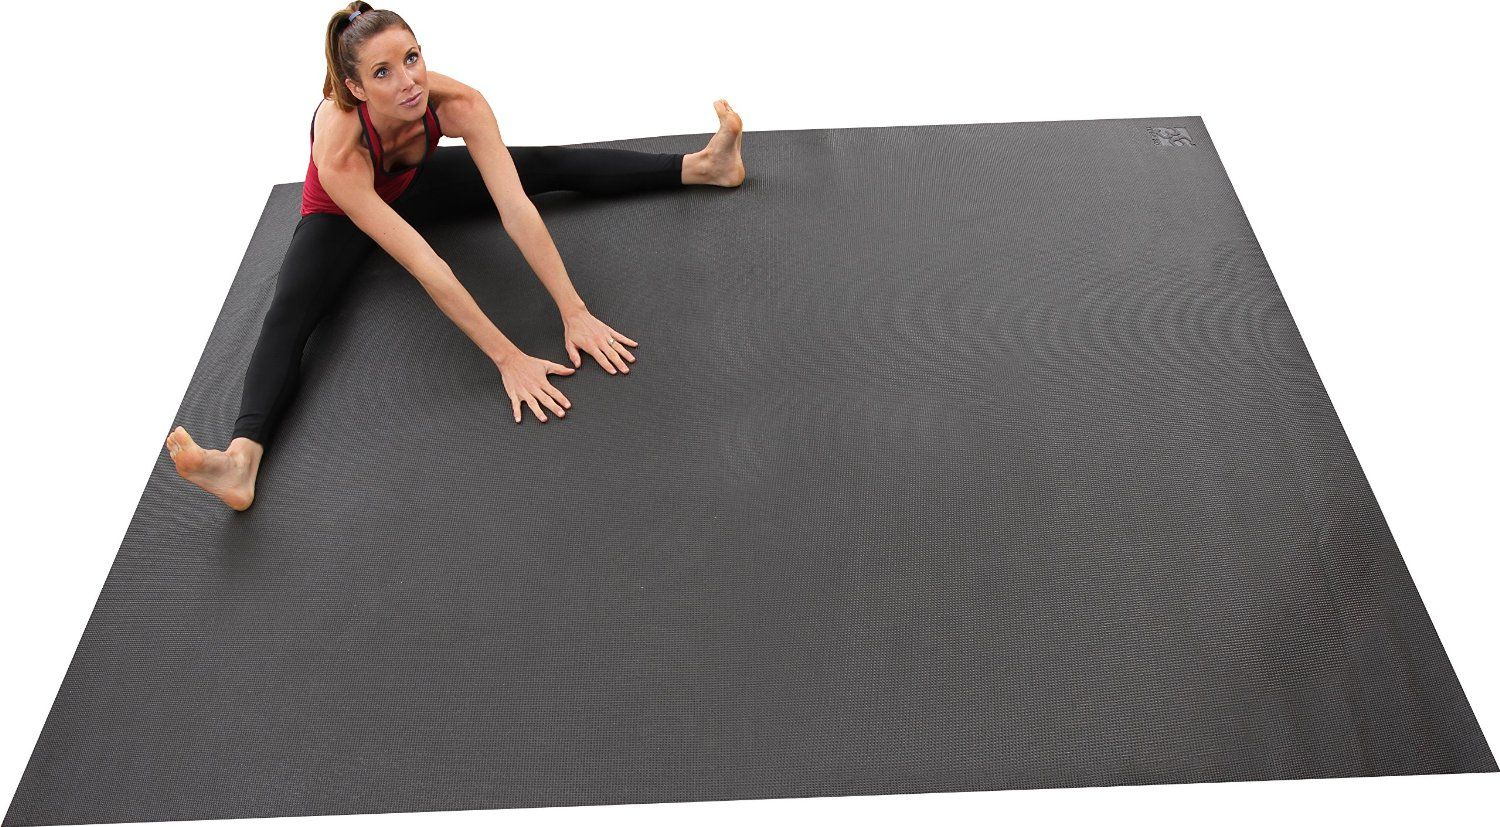 Amazon Com Largest Yoga Mat Available 8 X 6 96 X 72 4x Larger Than A Standard Yoga Mat Ideal For At Home Large Yoga Mat Yoga Studio Home Yoga Living